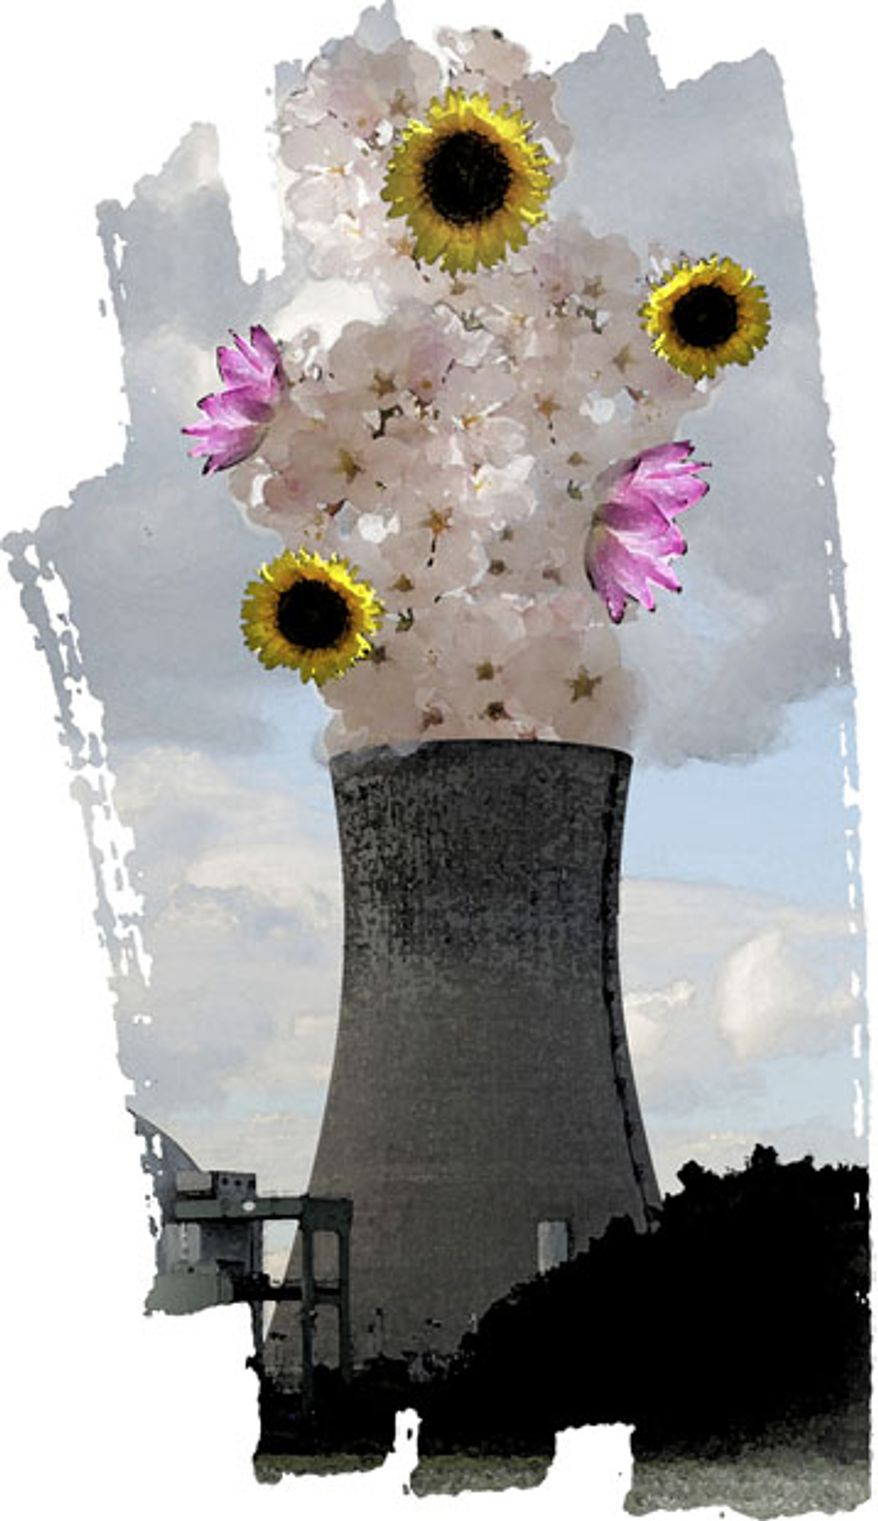 Illustration: Nuclear power by Greg Groesch for The Washington Times